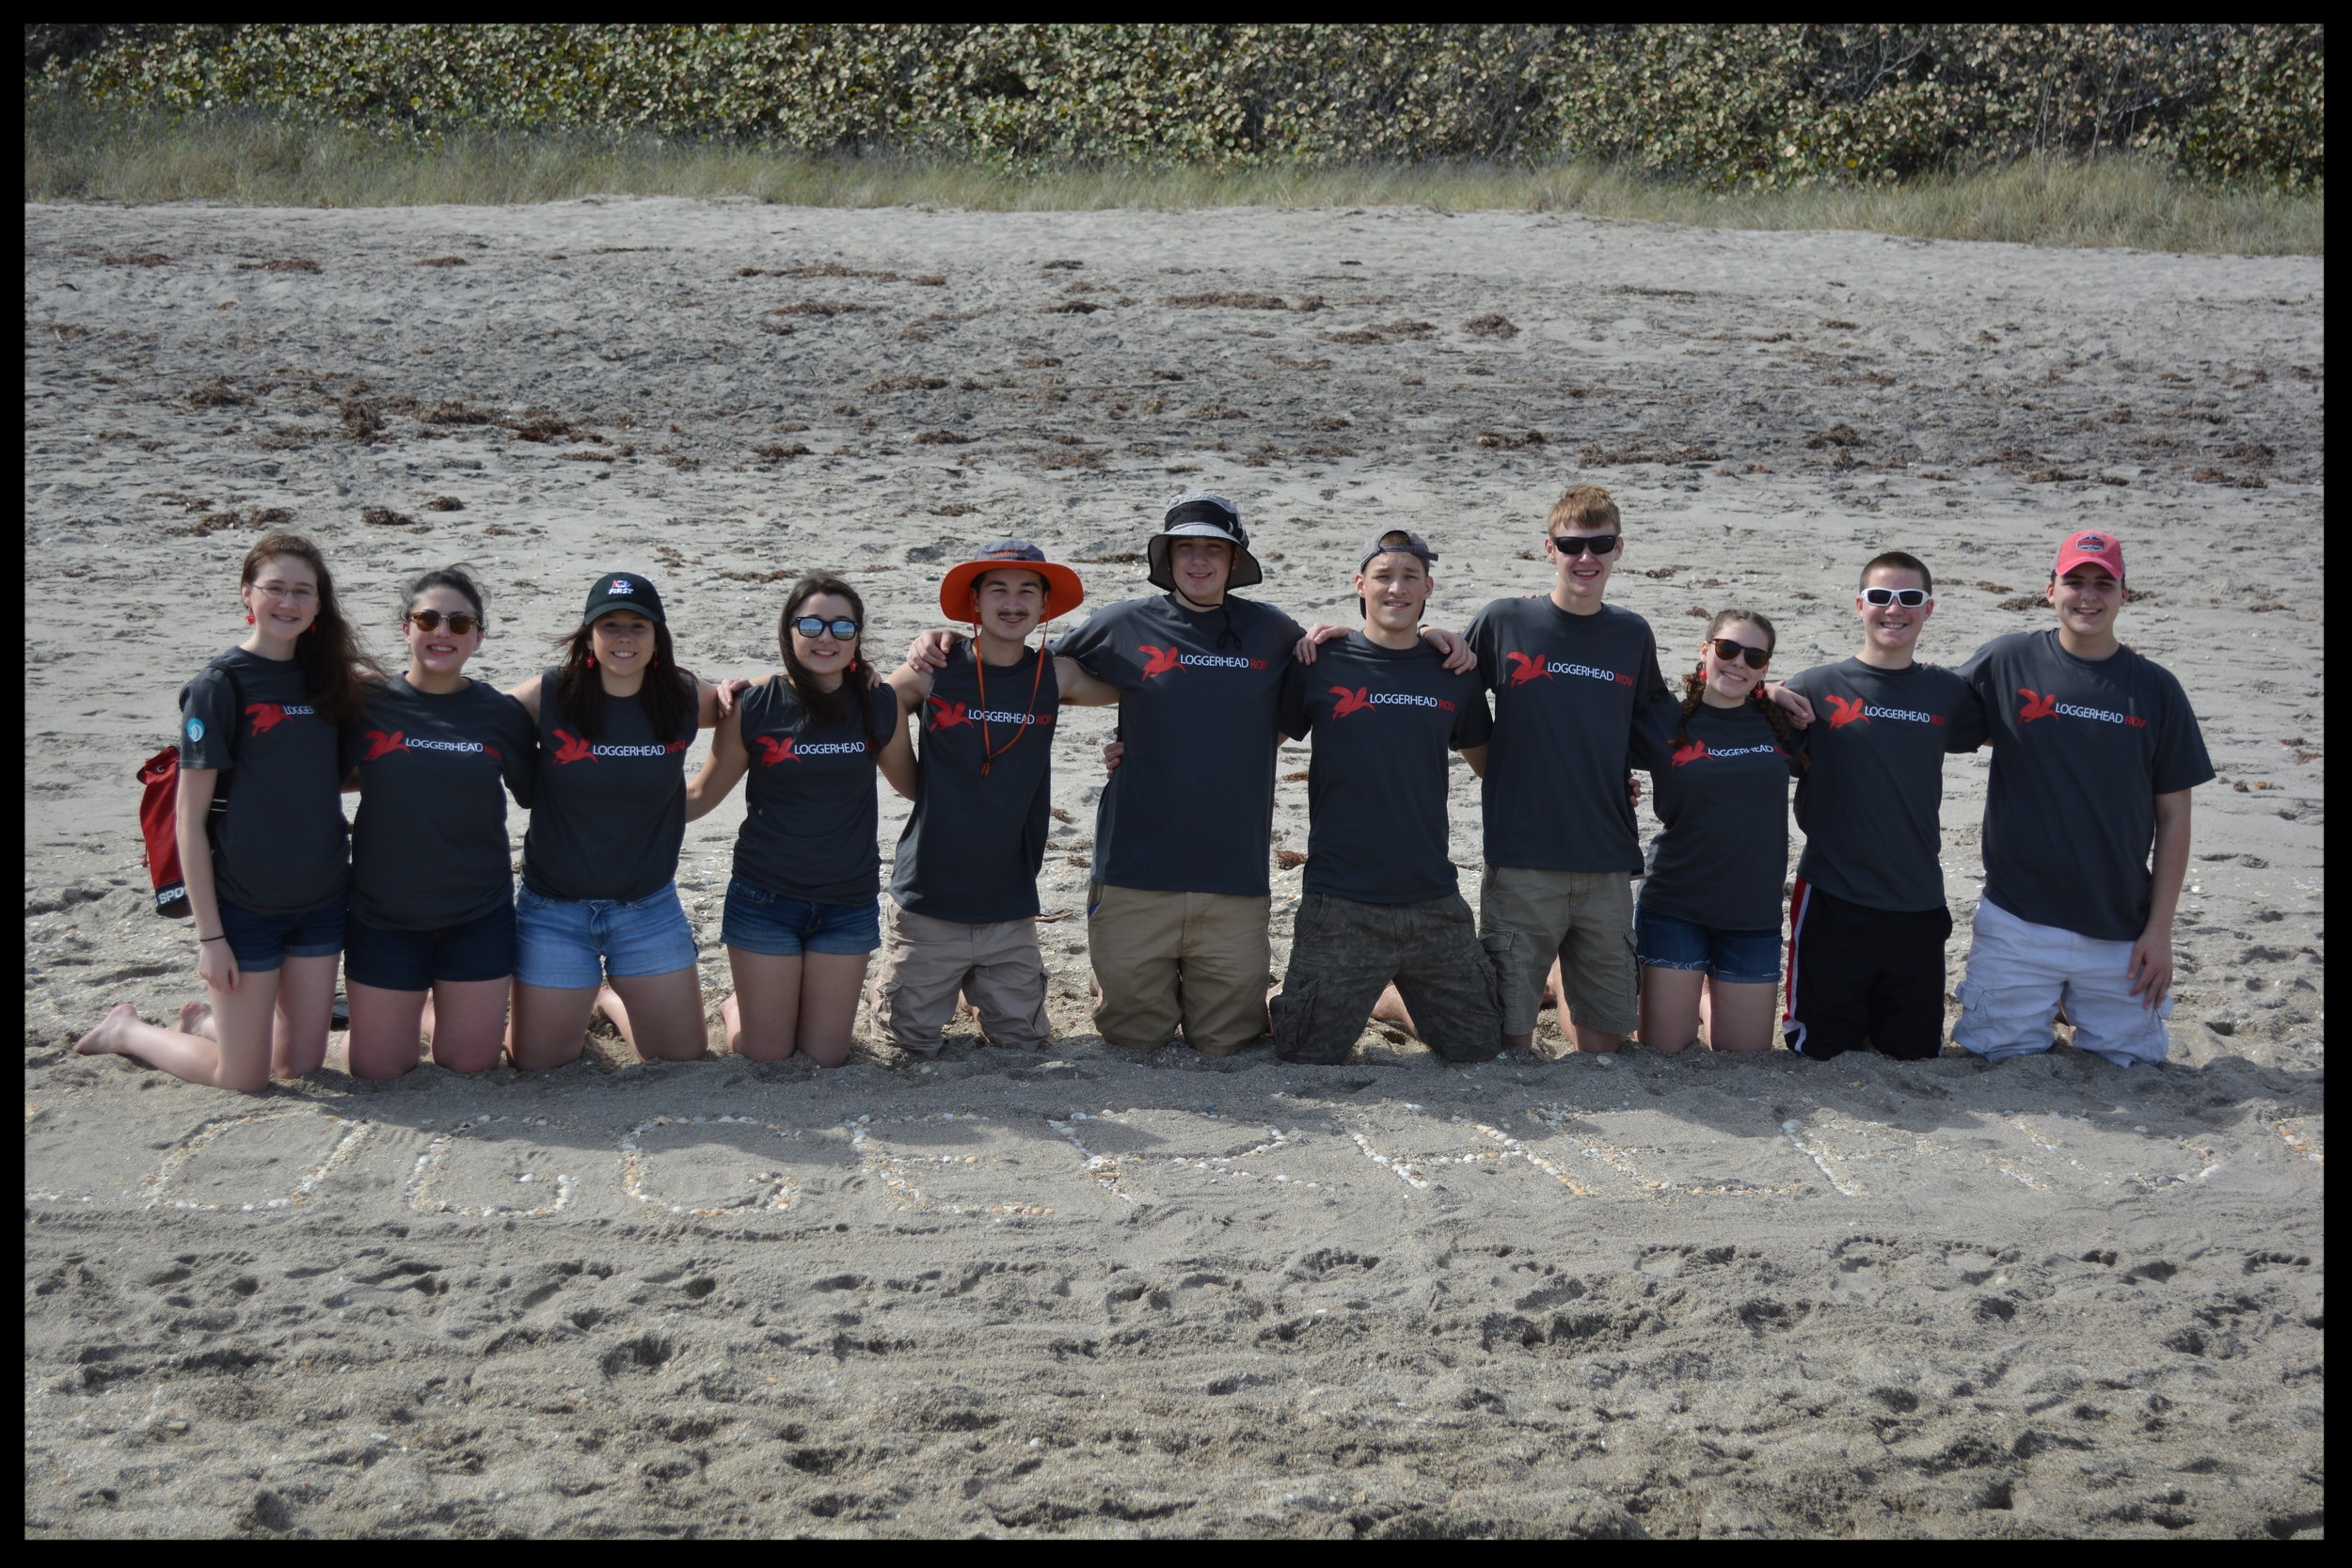 The team at our trip to Juno Beach, Florida in January 2017. We learned about marine life, collected harmful debris on the beaches, and met our adopted sea turtle Waffle at the Loggerhead Marinelife Center.